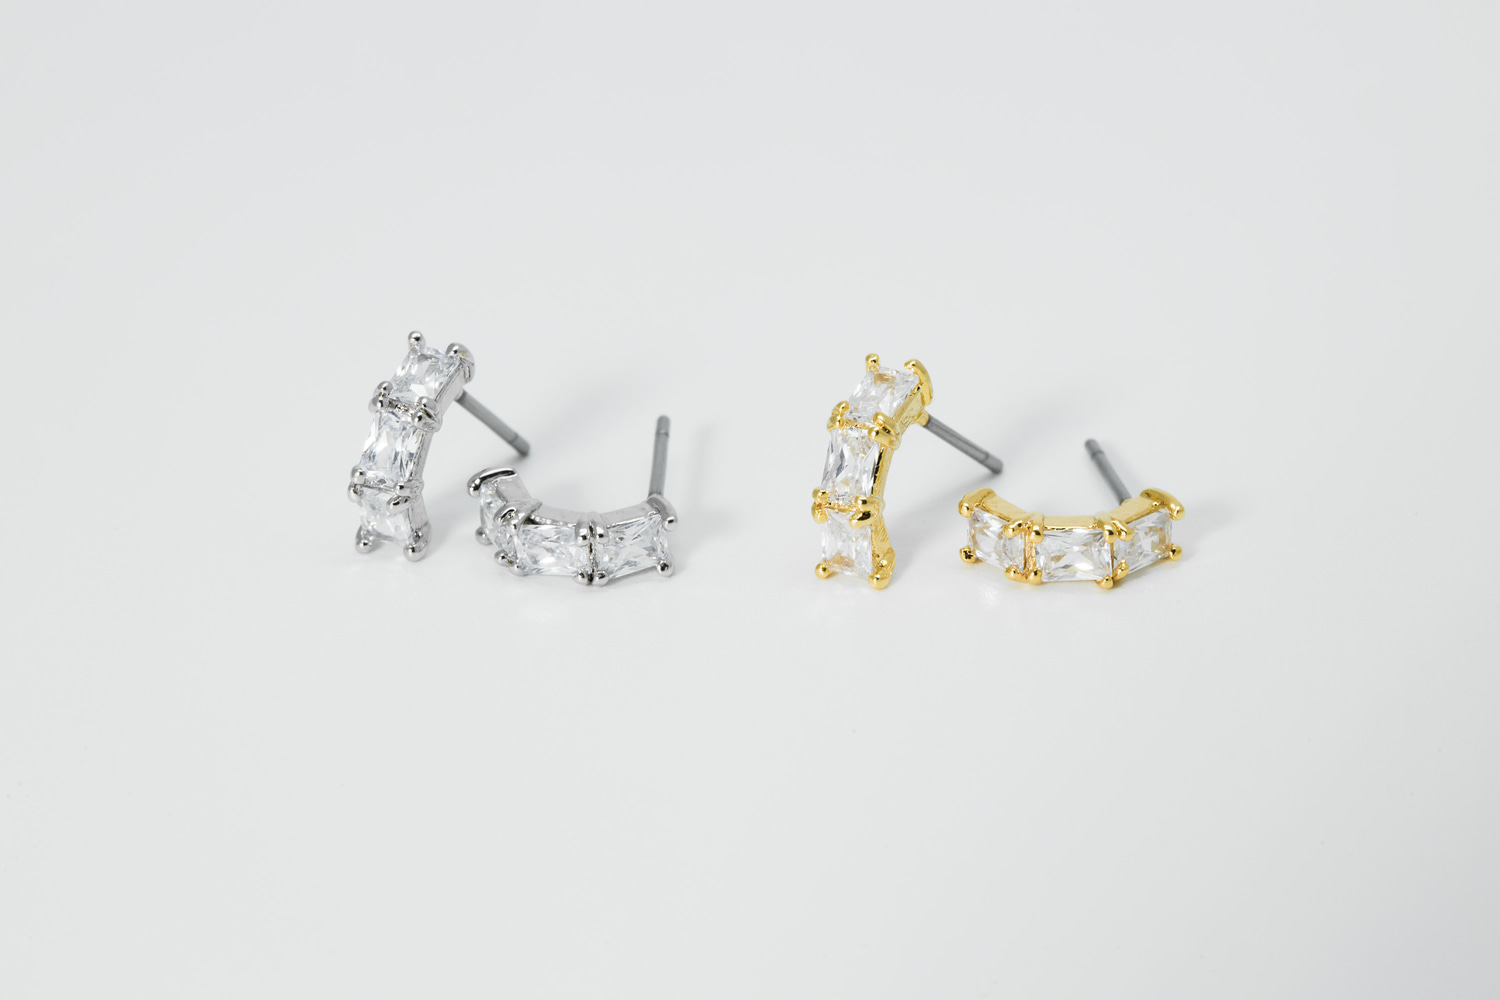 [EB20-34] Curved cubic stud earring, Brass, CZ, Nickel free, Handmade jewelry, Post earrings, Earring stud (D5-G1, D5-G1R)